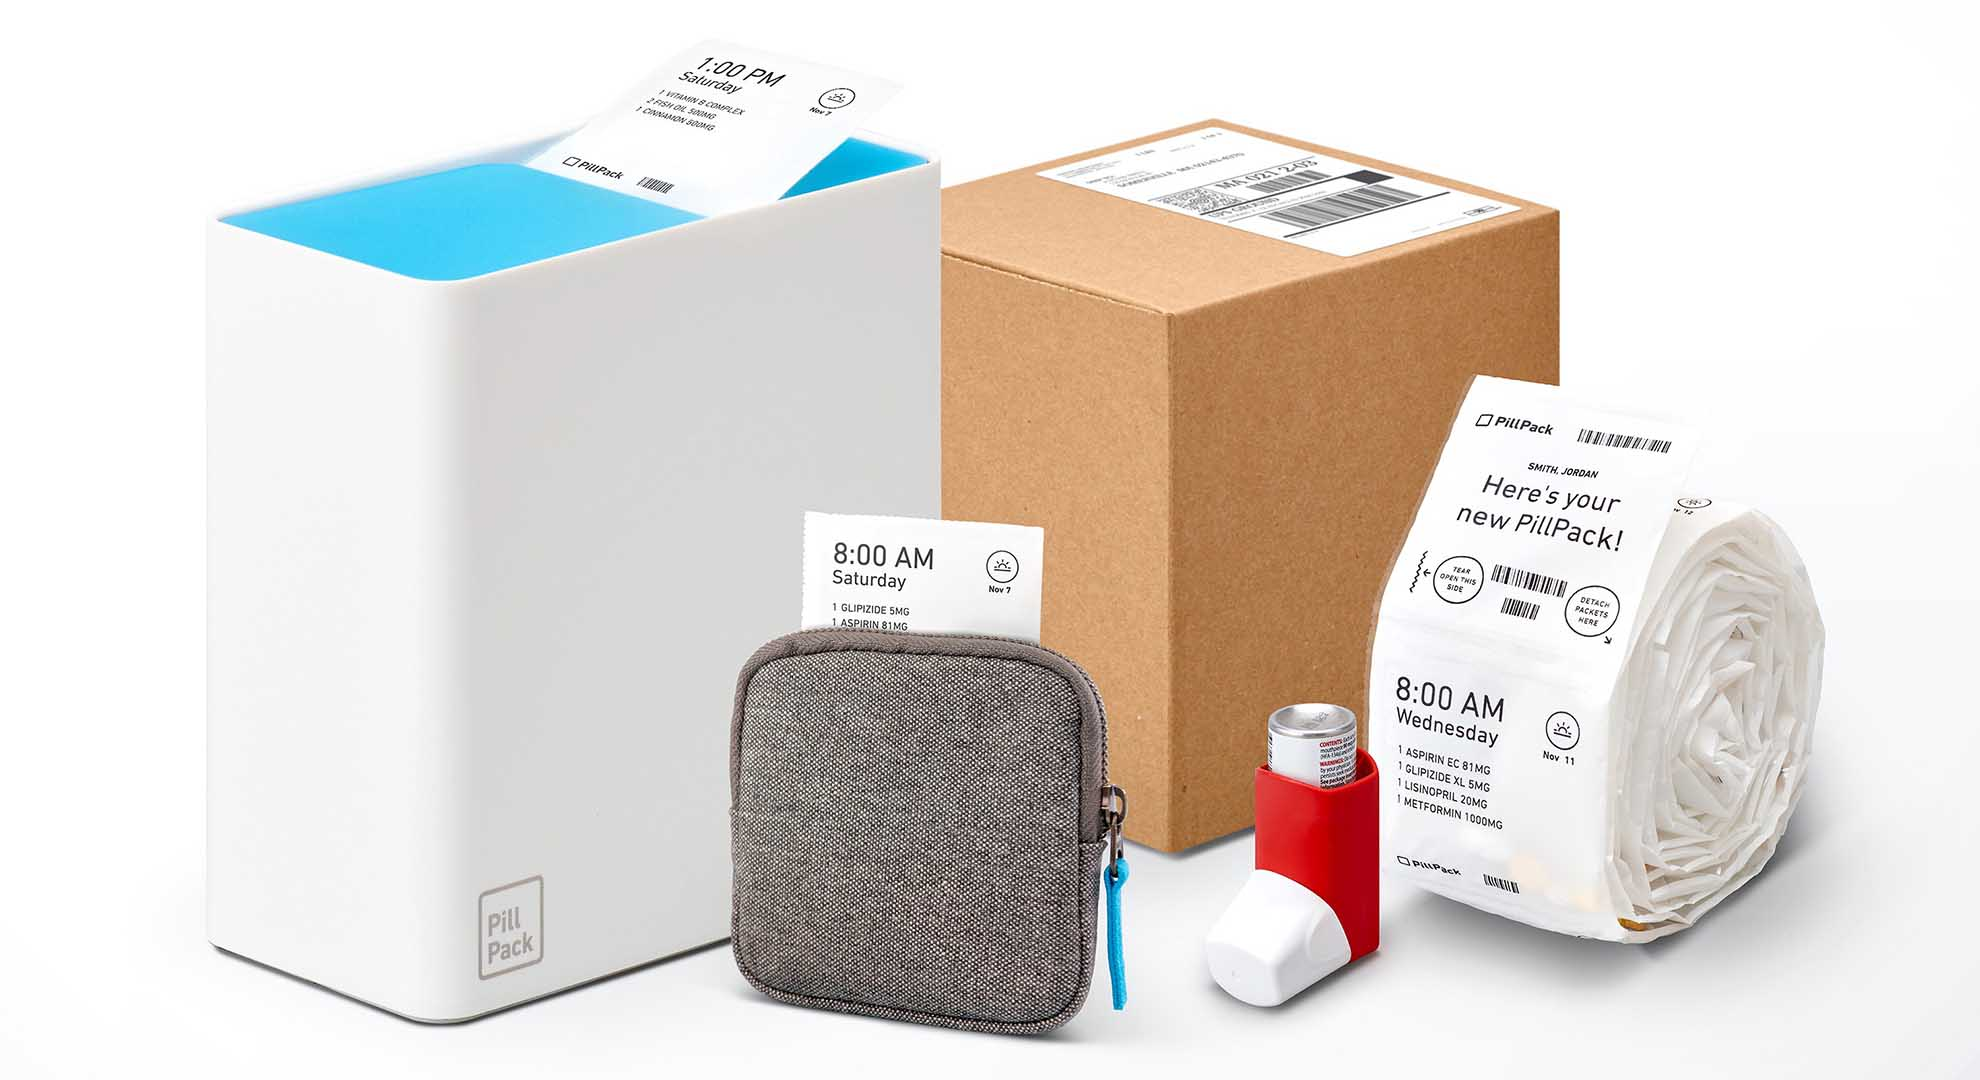 Pill Pack is a dosed prescription system that contributes to the health of the ageing population